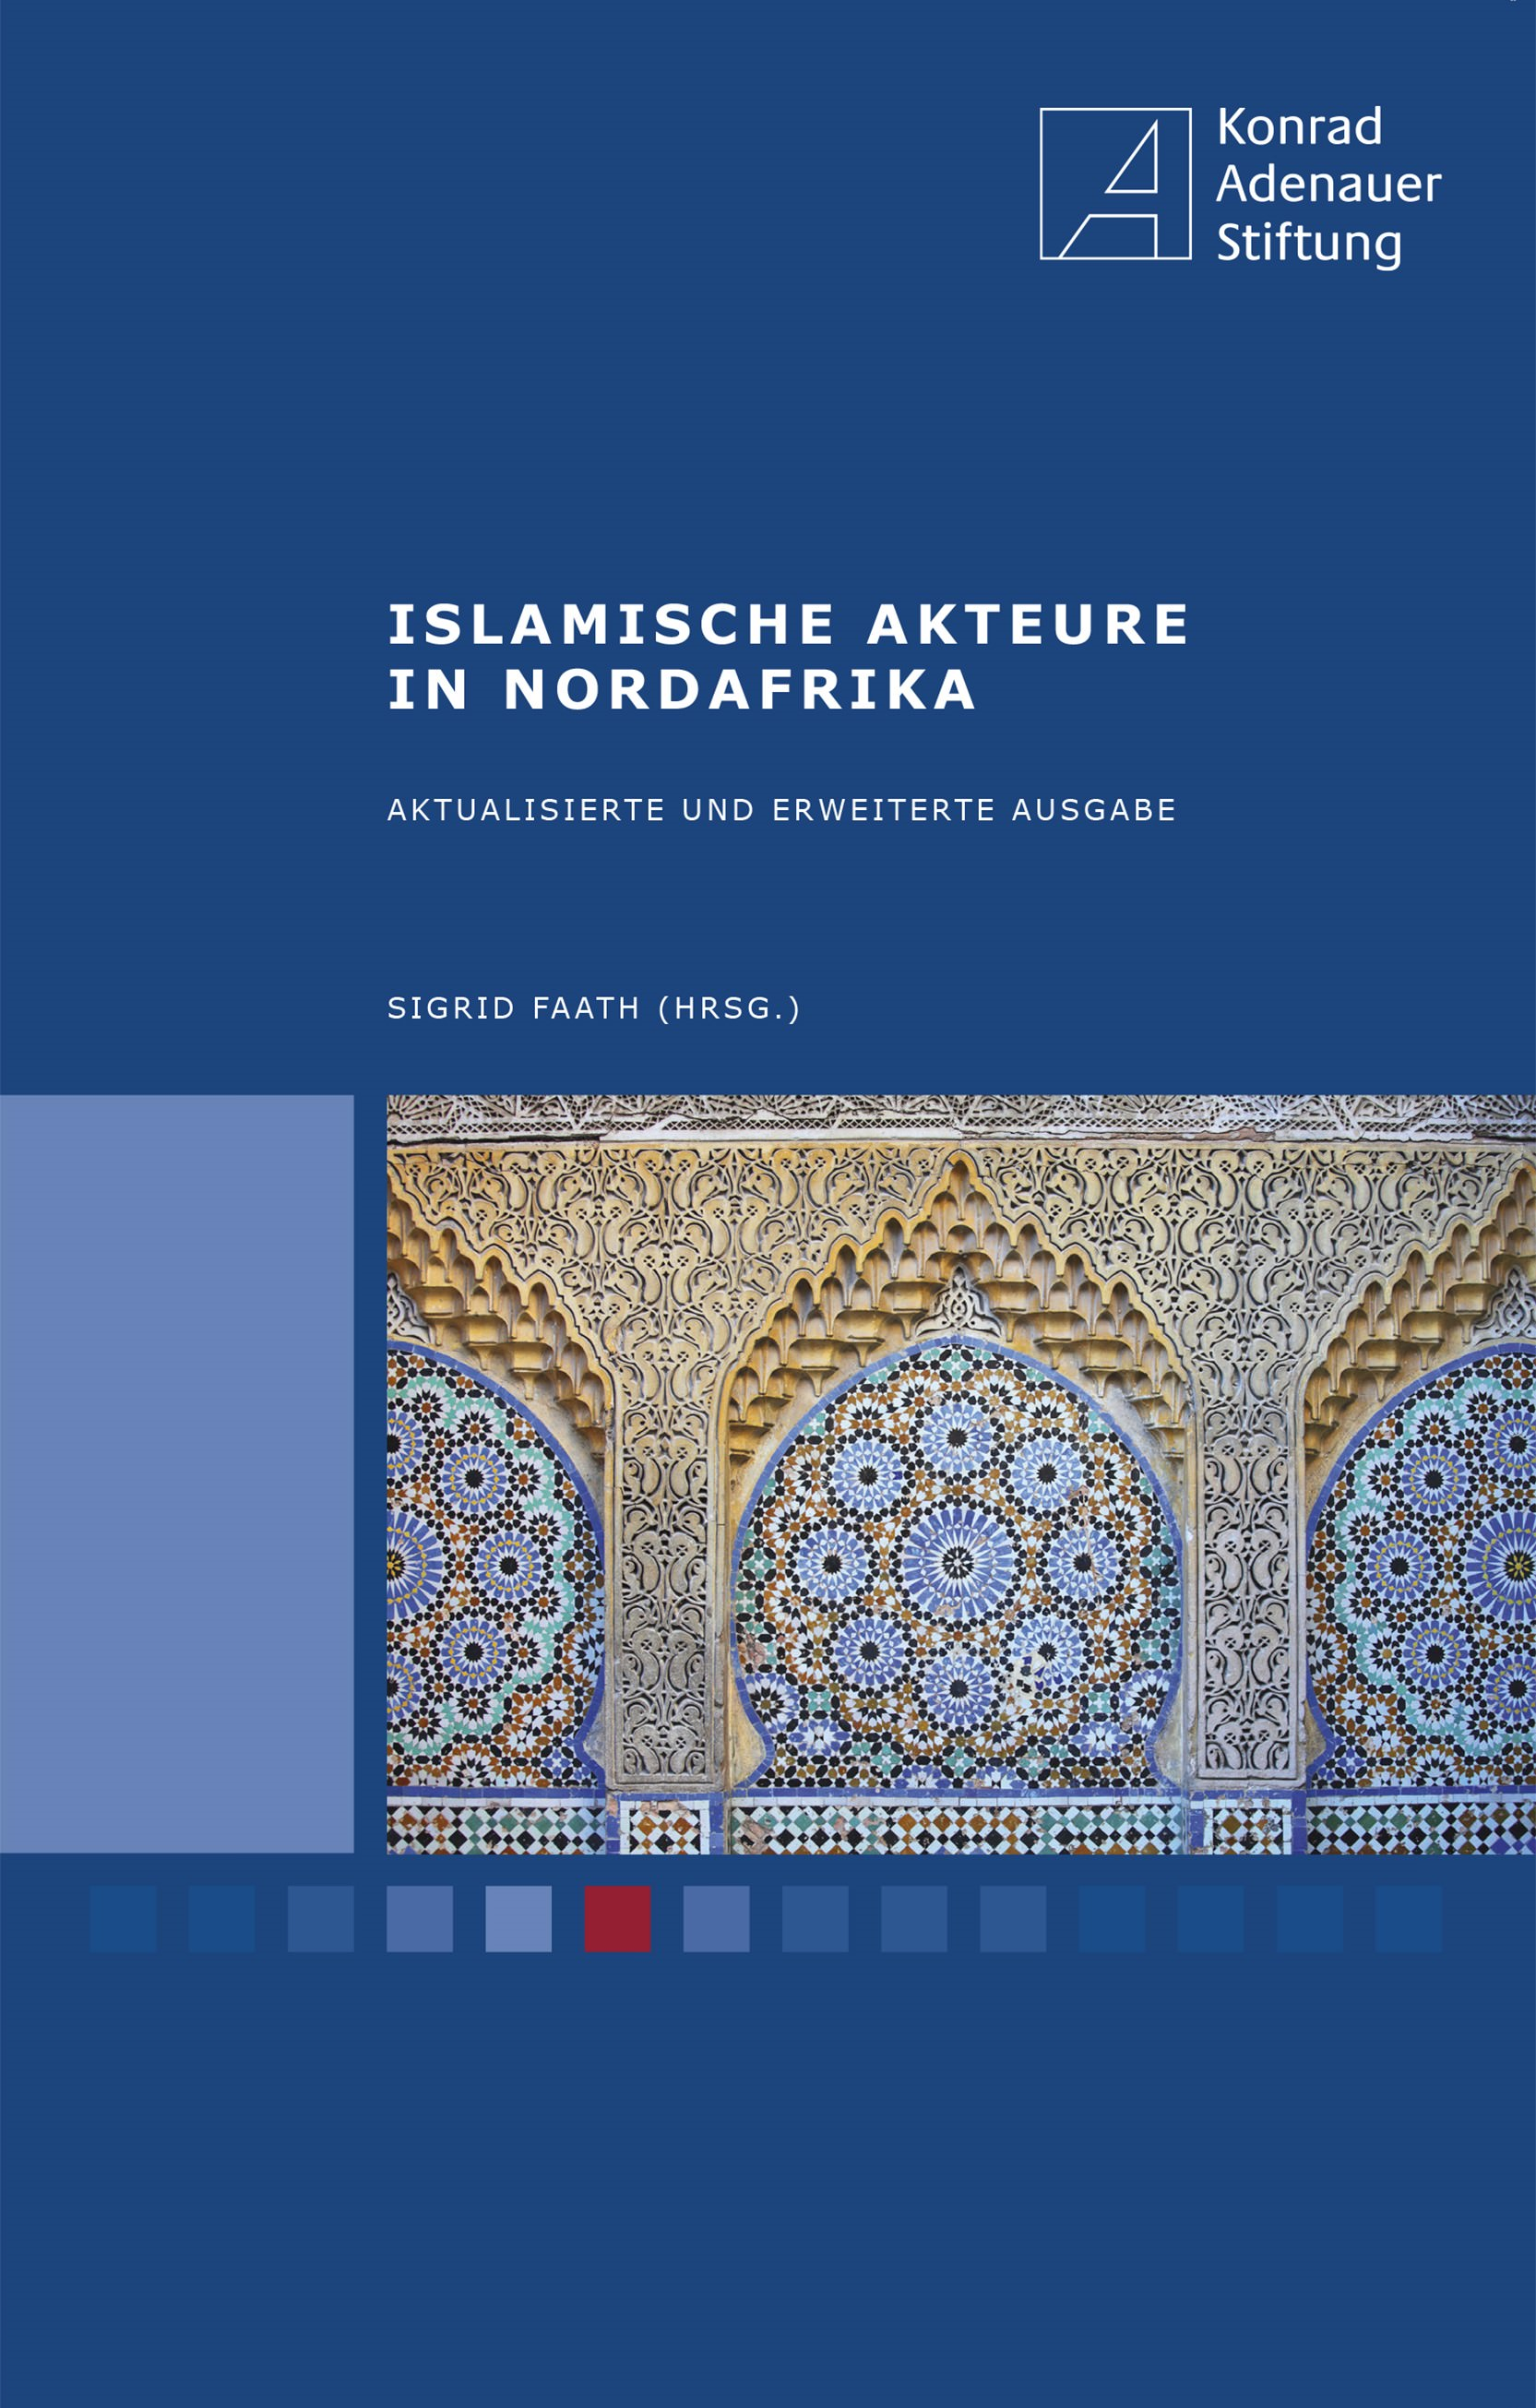 Sigrid Faath (Hrsg.): Islamische Akteure in Nordafrika